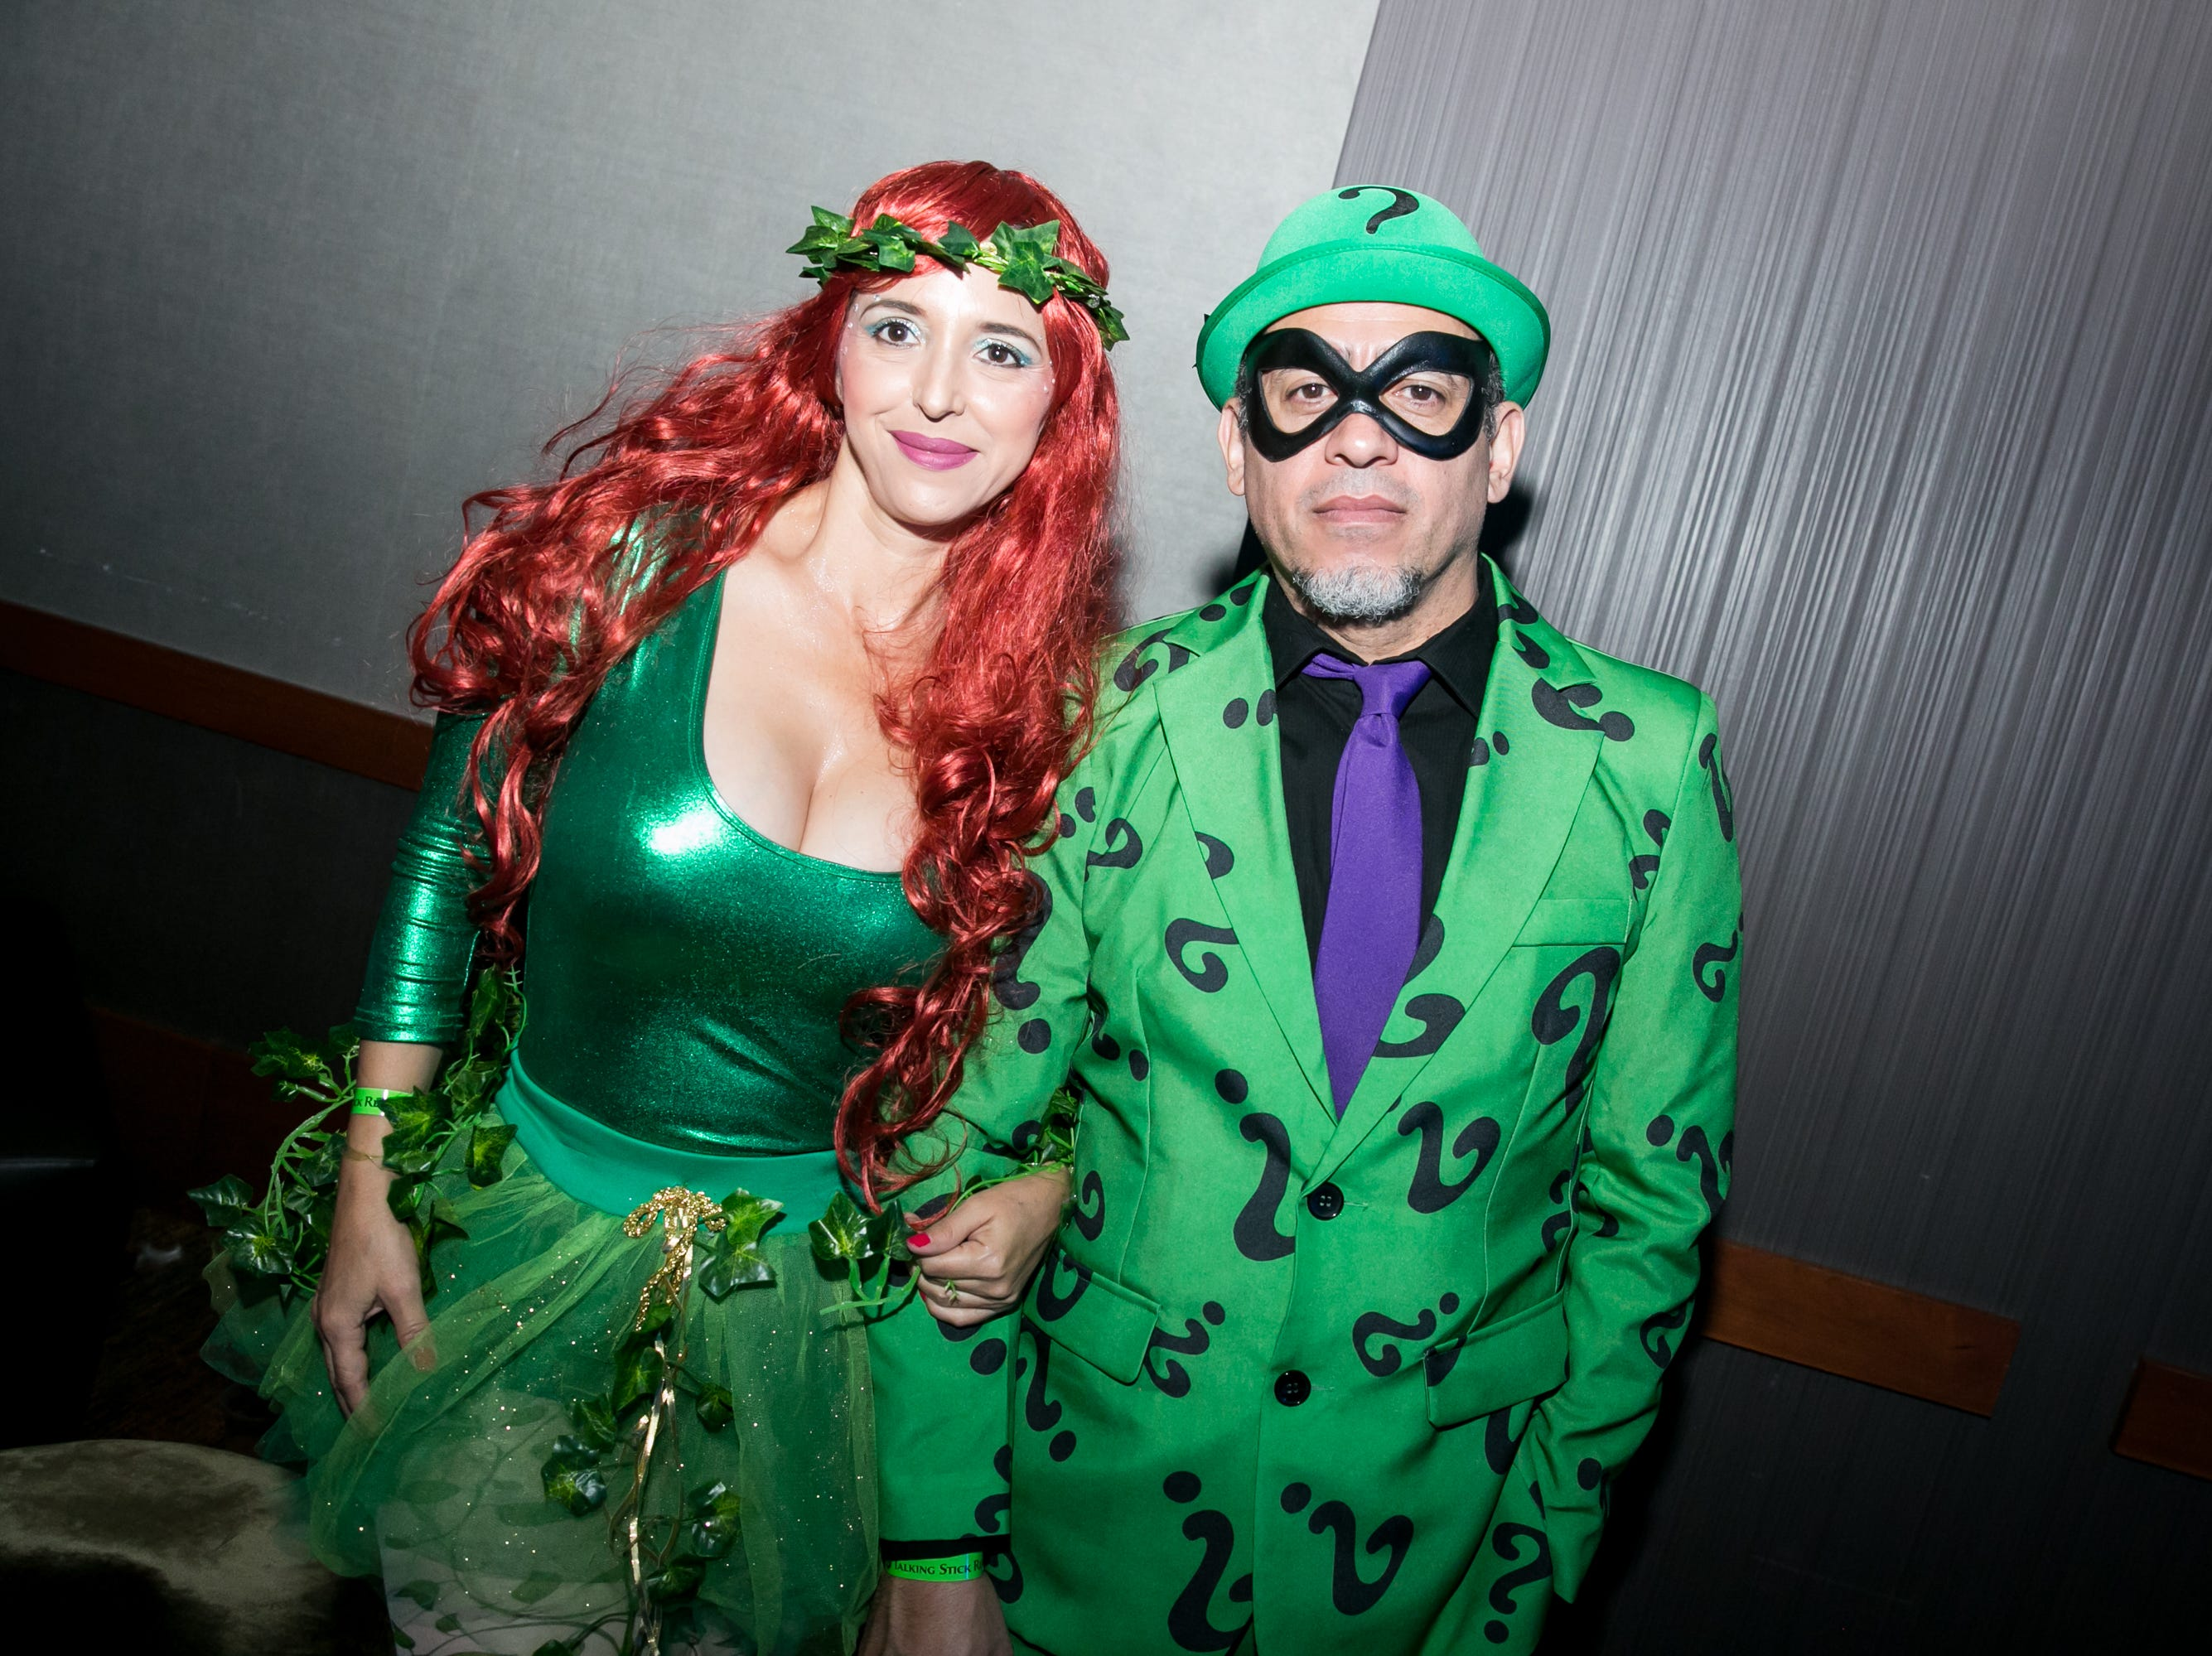 This couple meddled with Batman's plans during Wicked Ball at Talking Stick Resort on Saturday, October 27, 2018.